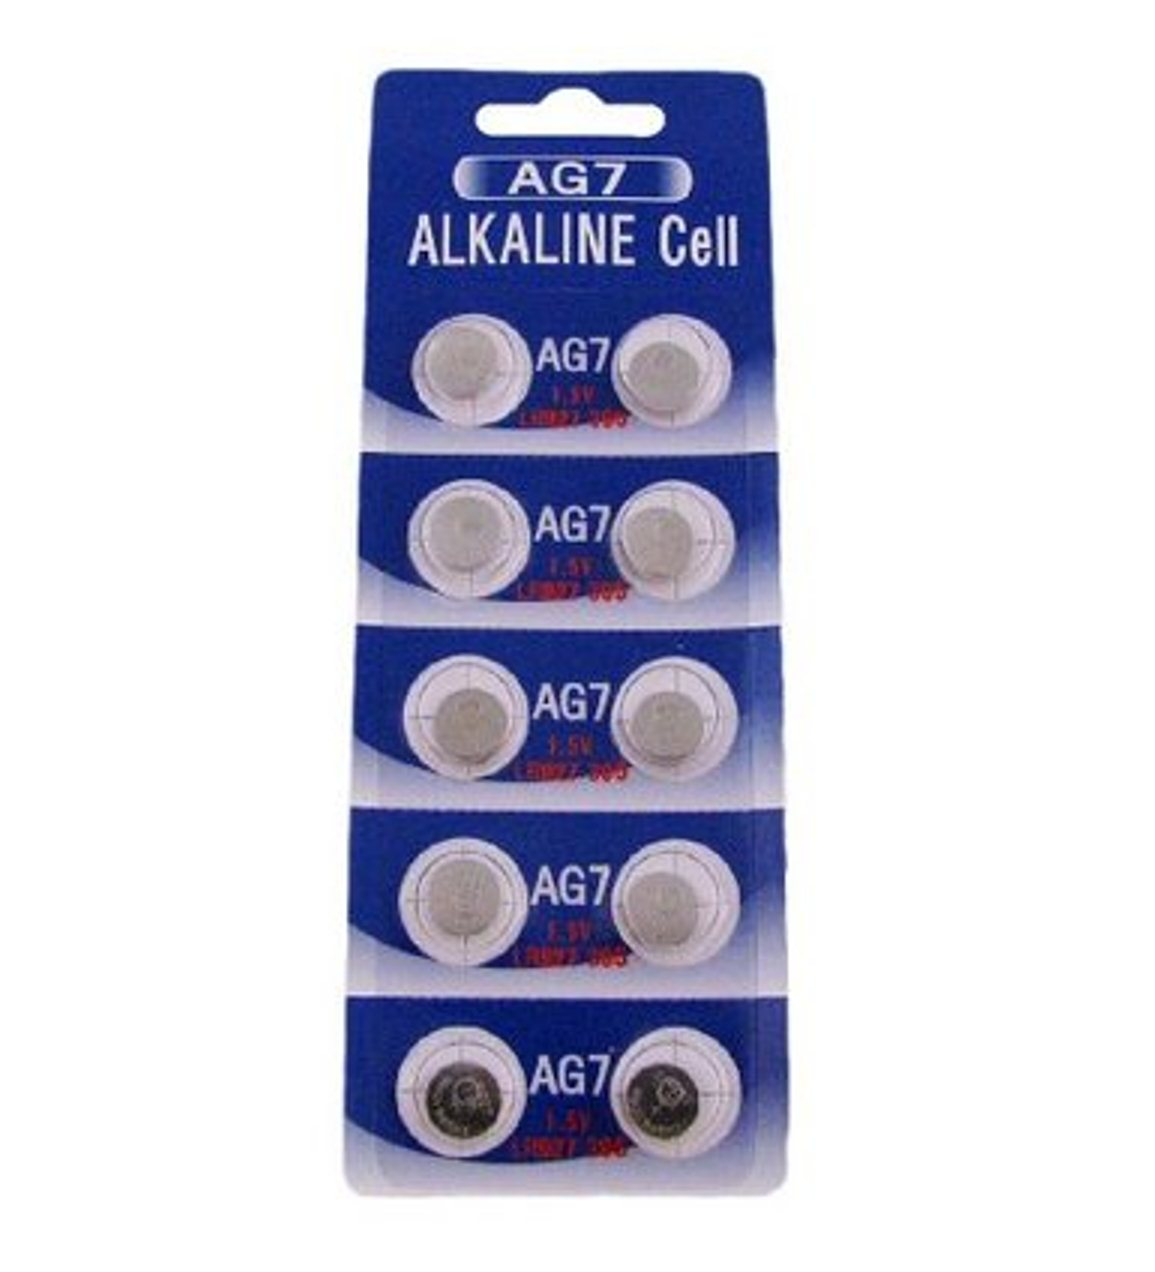 AG7 / LR927 Alkaline Button Watch Battery 1.5V - 500 Pack - FREE SHIPPING